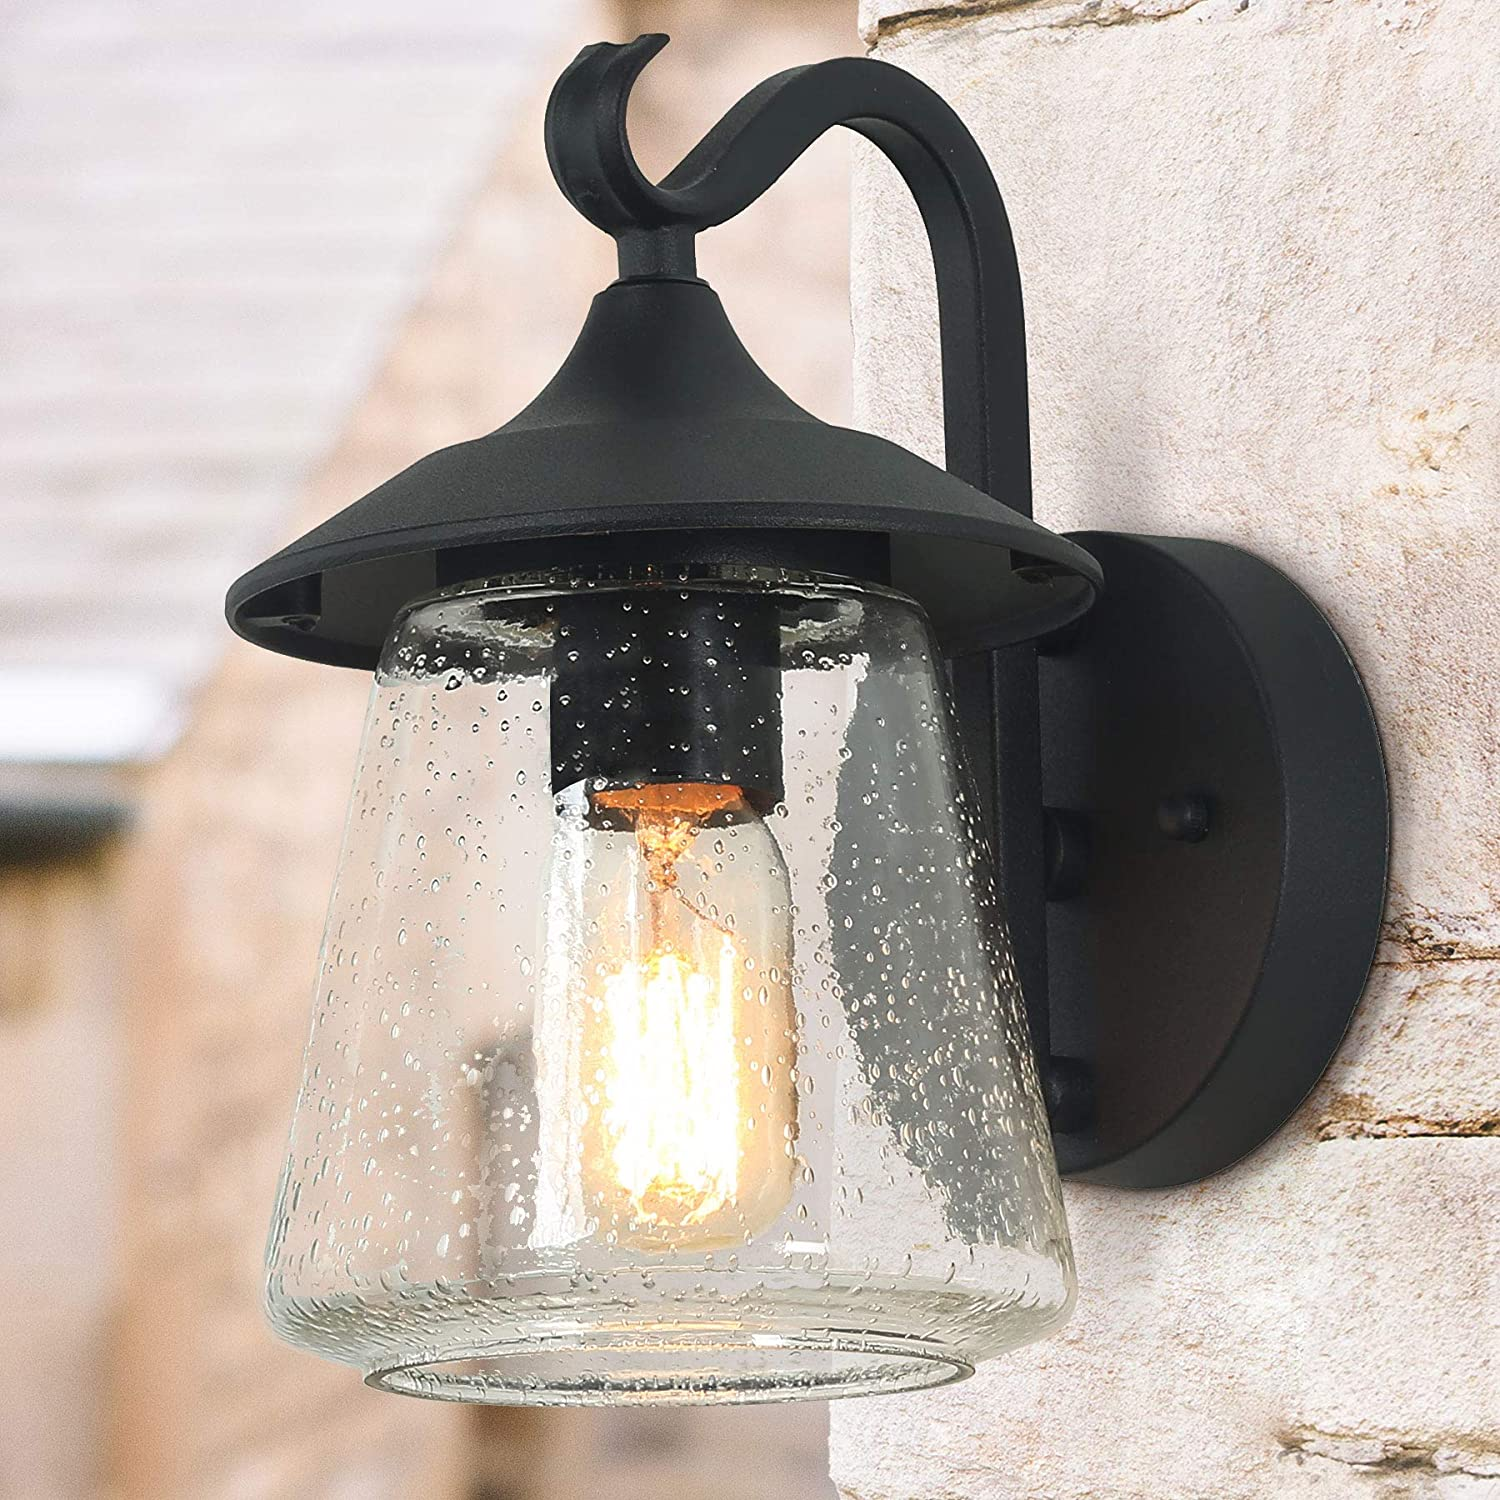 Amazon com log barn outdoor wall light,farmhouse exterior lantern in black with seeded glass for porch barn a03356 1 light light home kitchen